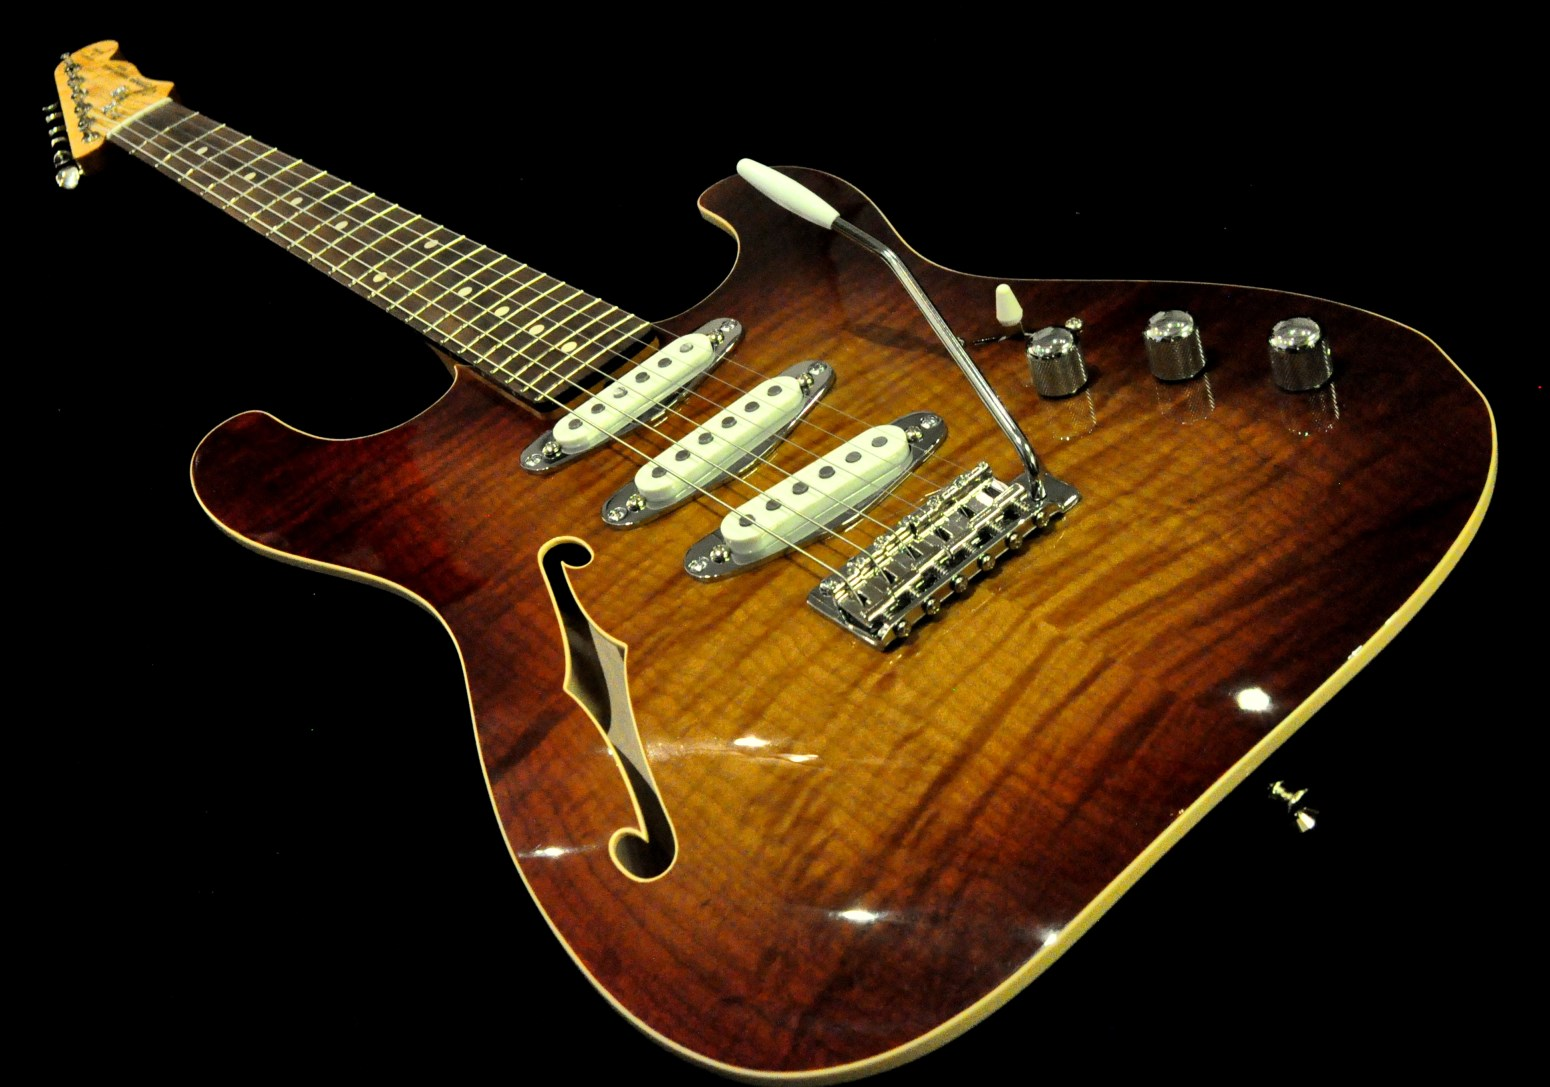 St-Style, Contoured Thinline, Maple Top